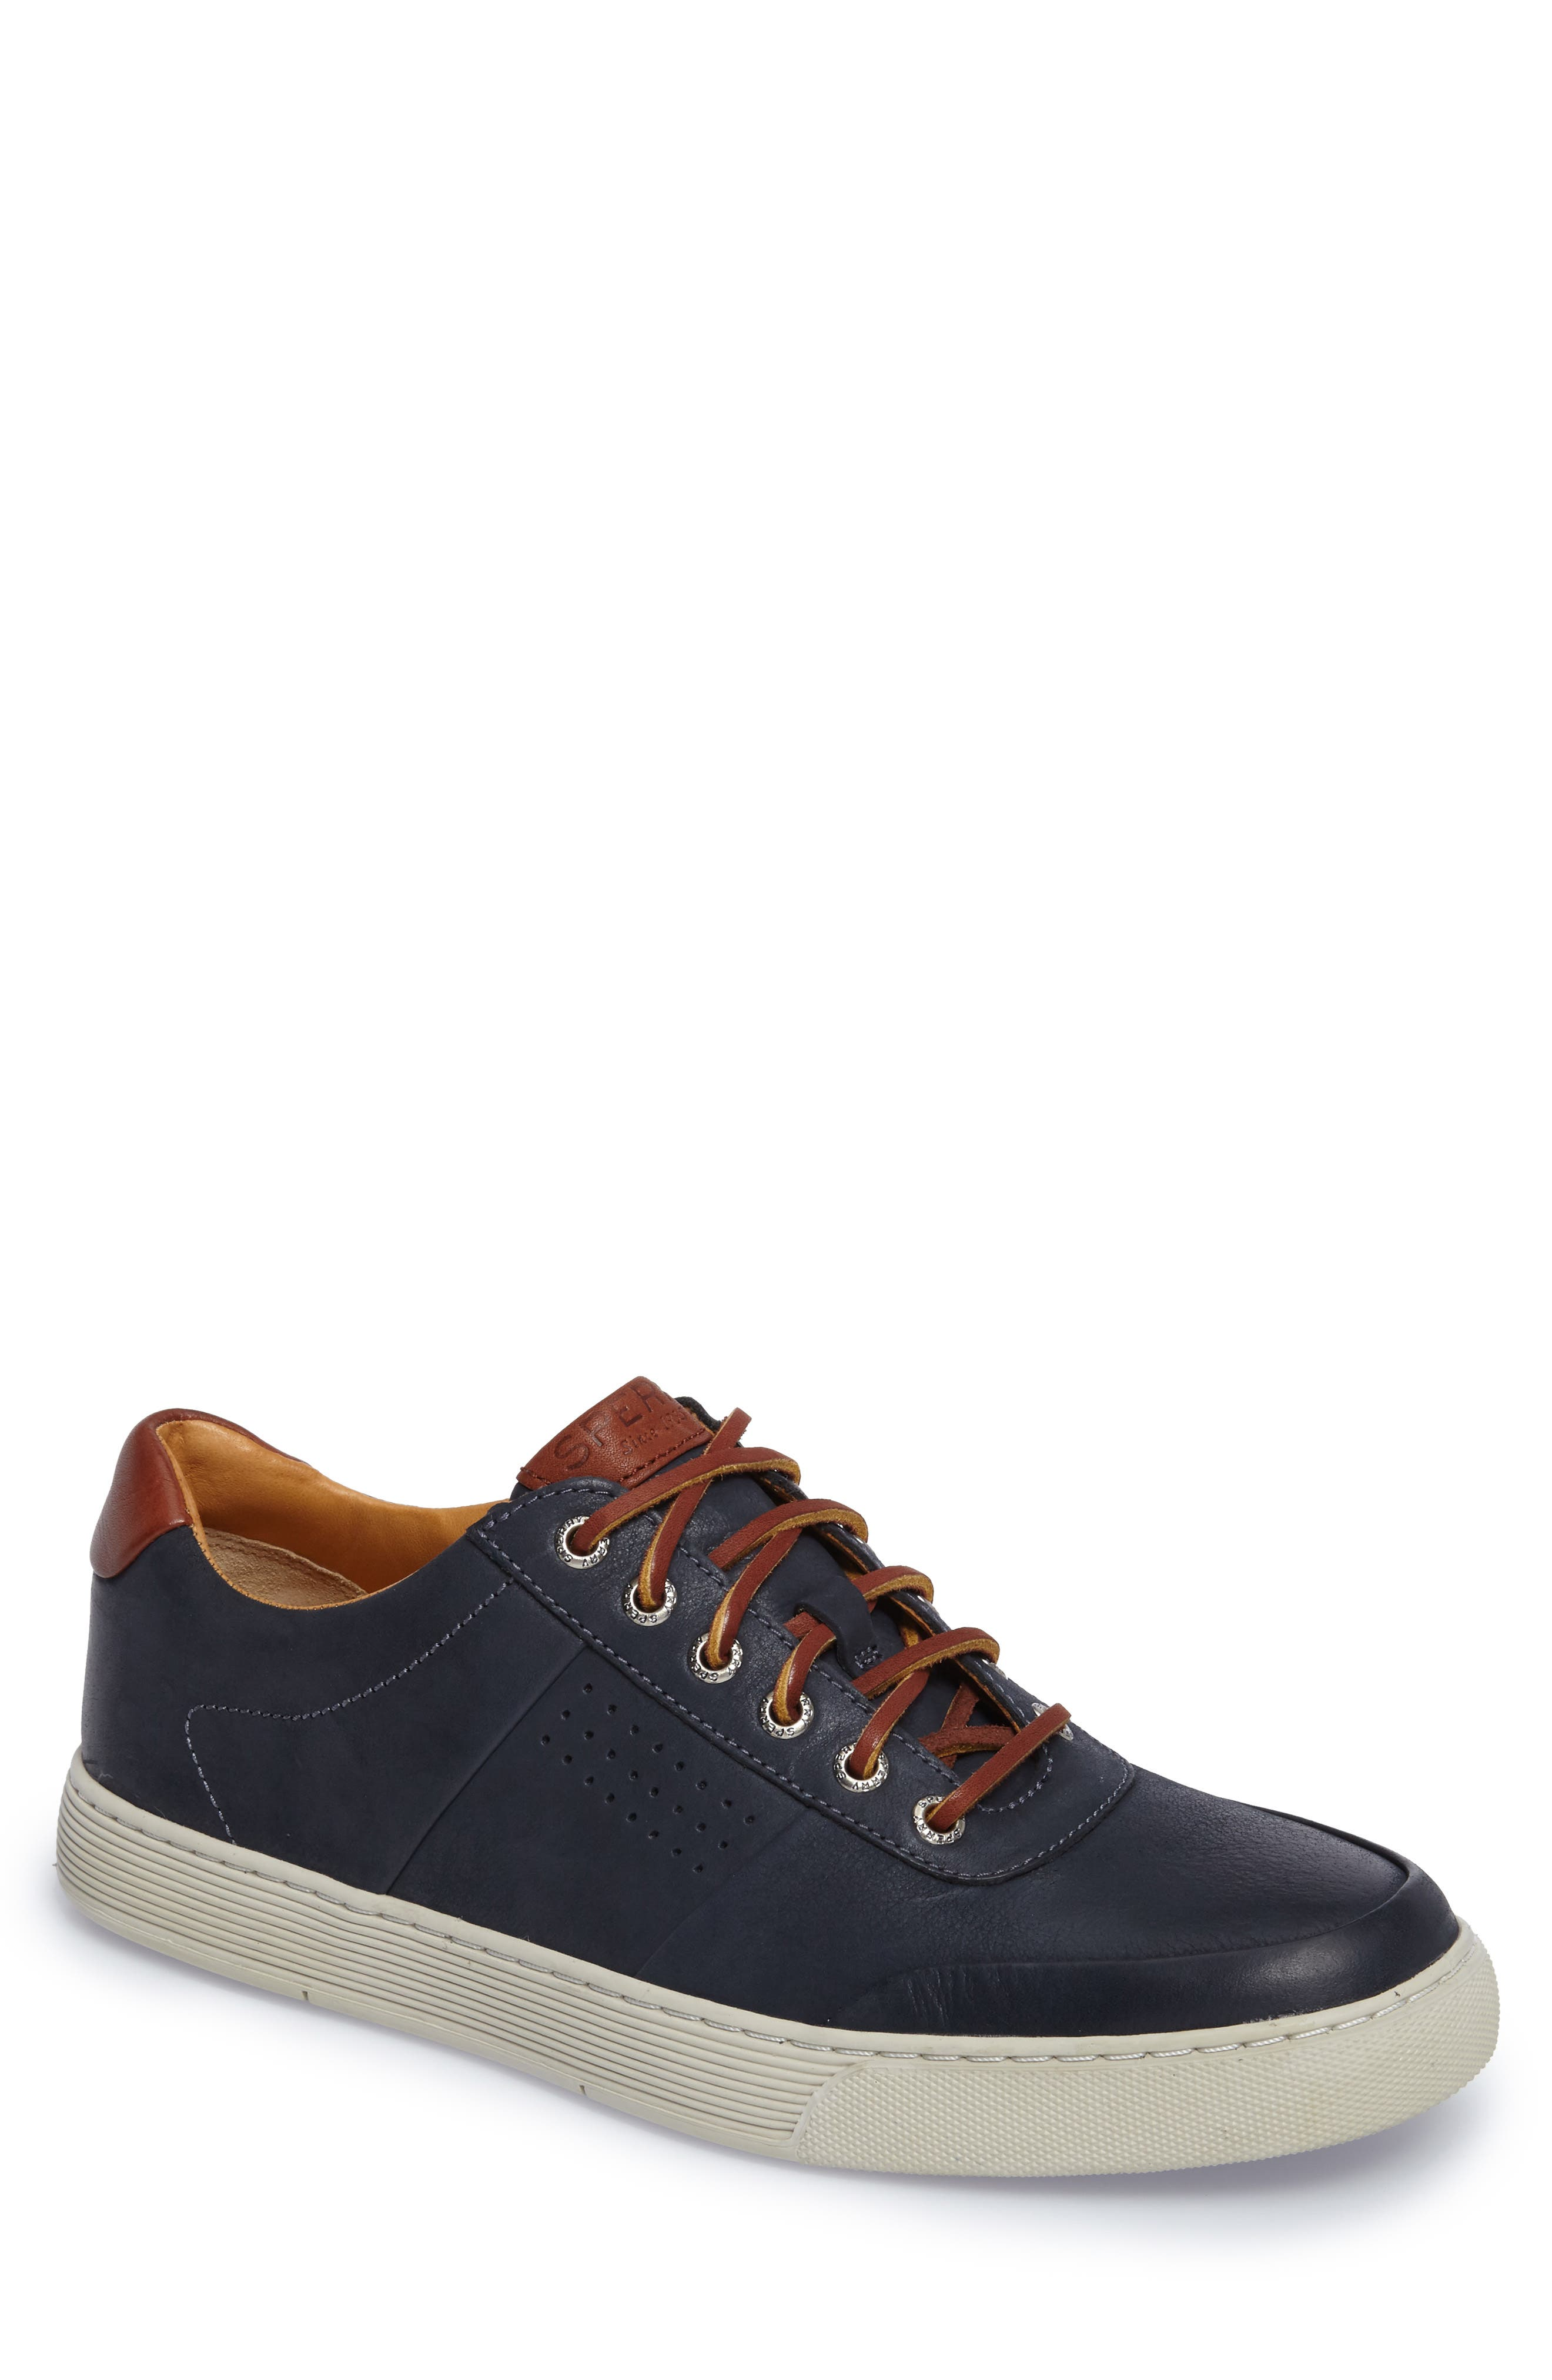 Gold Cup Sport Sneaker,                         Main,                         color, Navy Leather